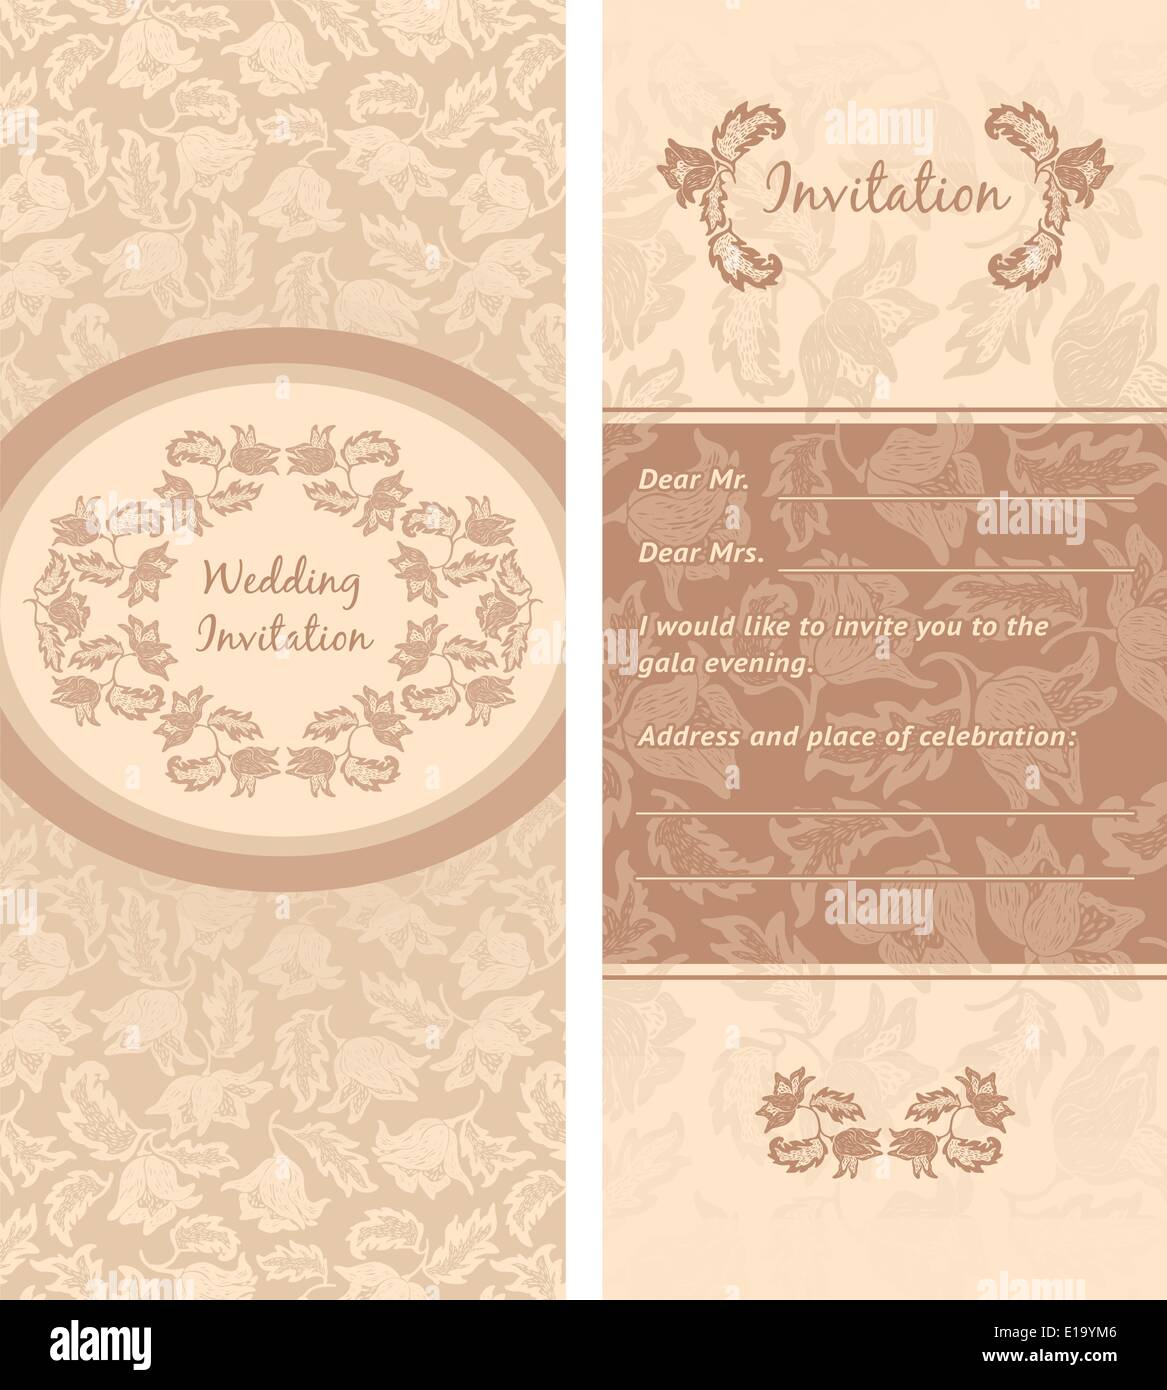 Invitation Card Greeting Background Can Be Used For